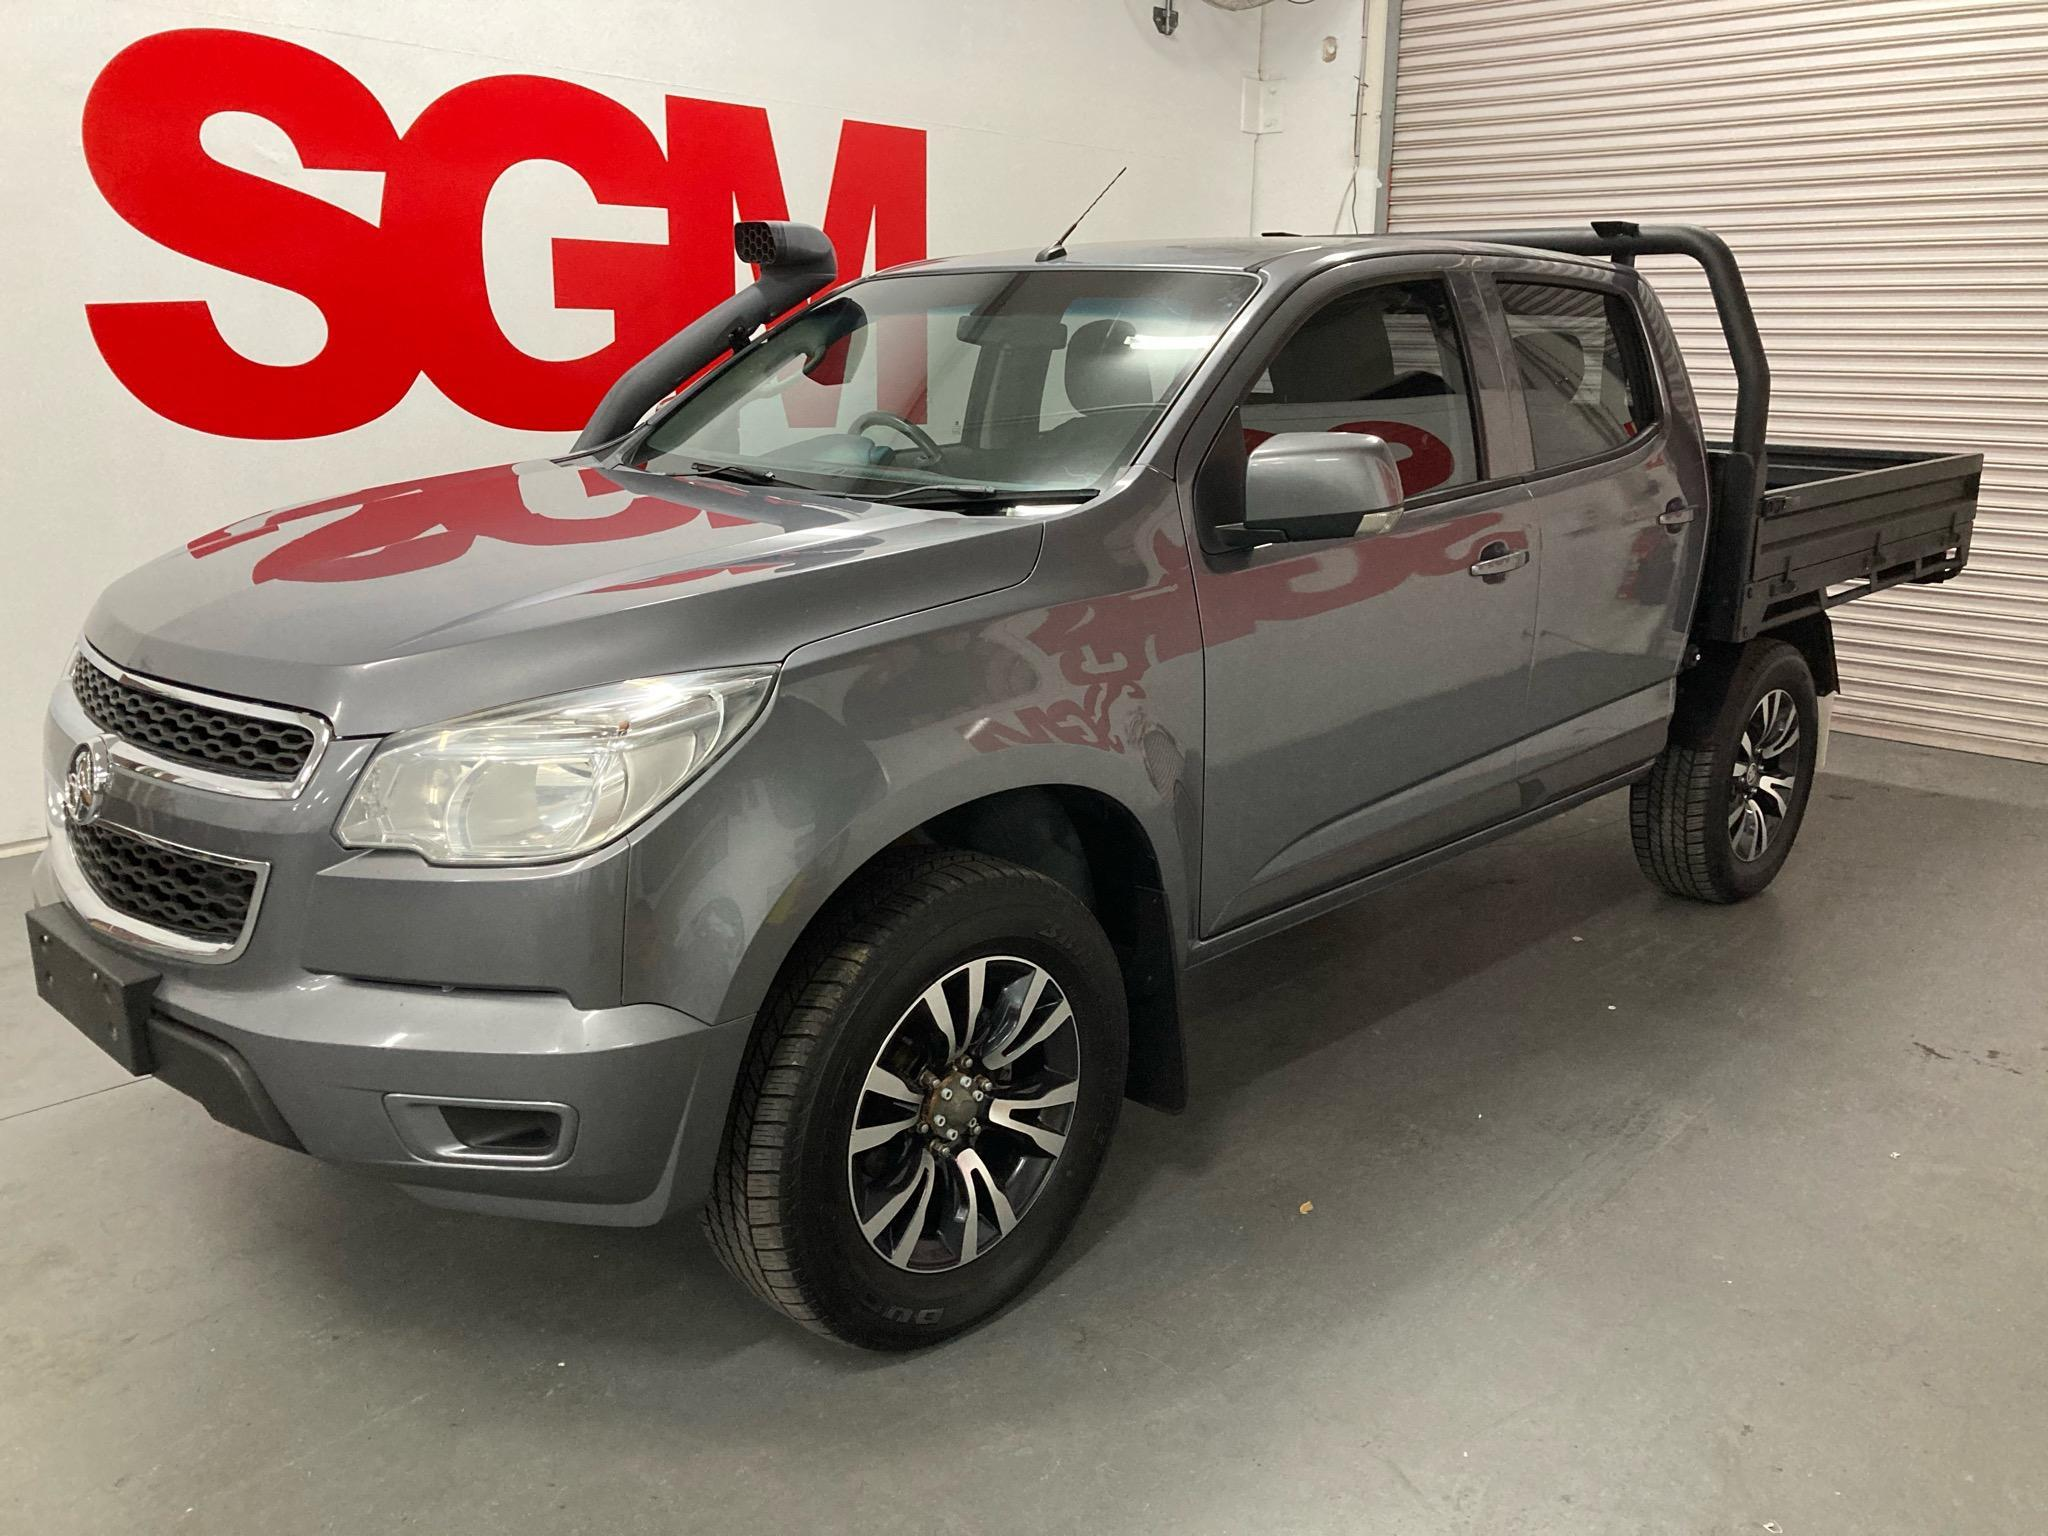 2016 Holden Colorado RG LS Cab Chassis Crew Cab 4dr Man 6sp 4x4 2.8DT MY16 Picture 8